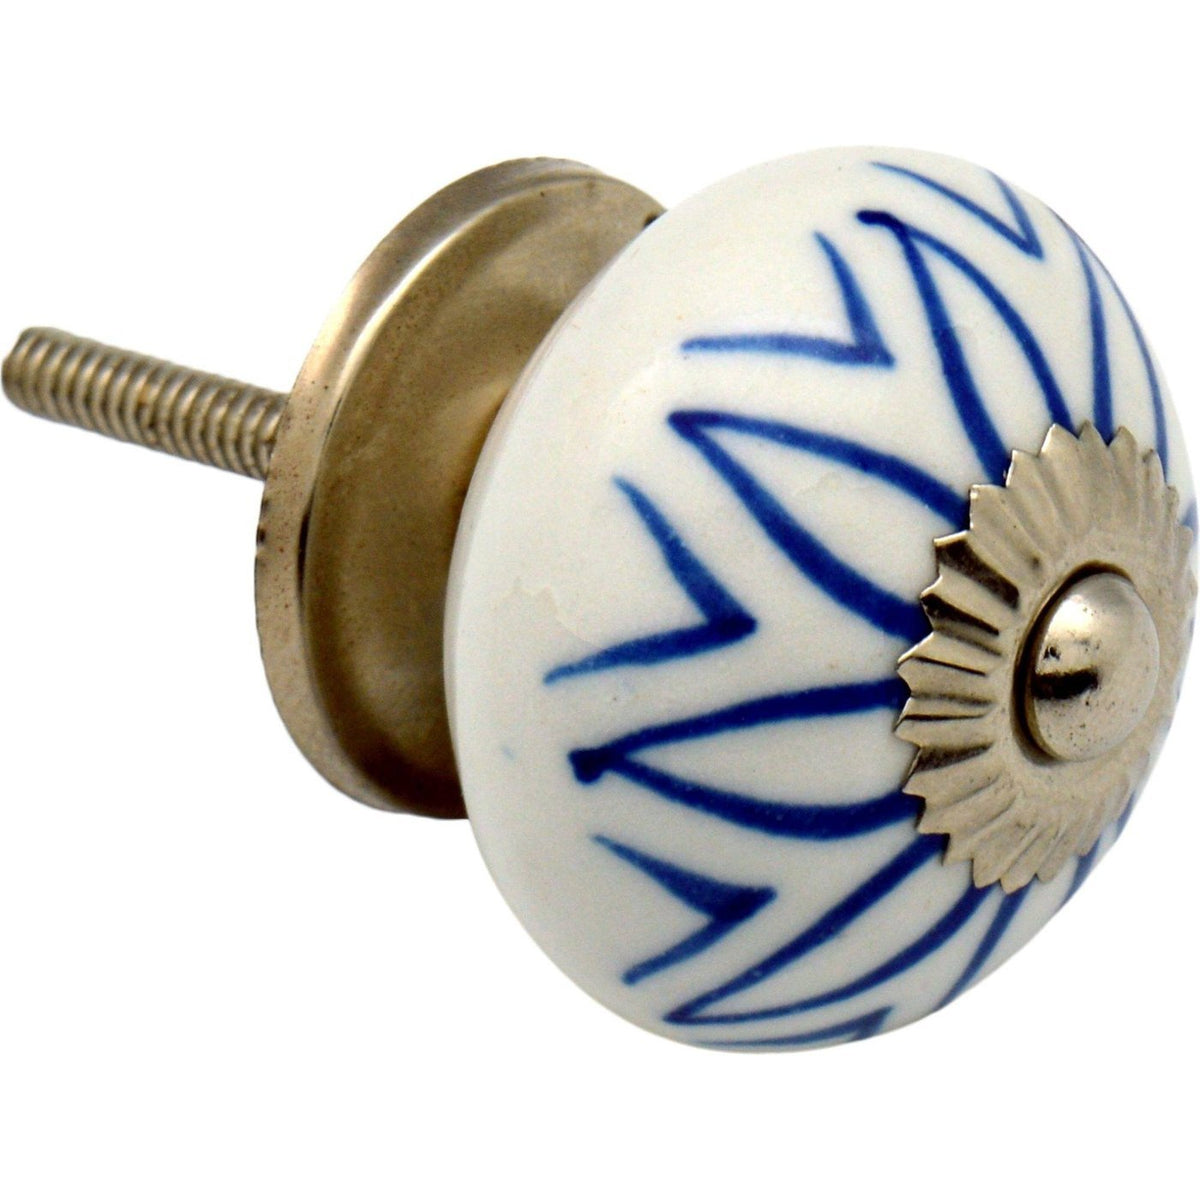 Nicola Spring Floral Ceramic Door Knob and Handle - Light Blue Flower Lines